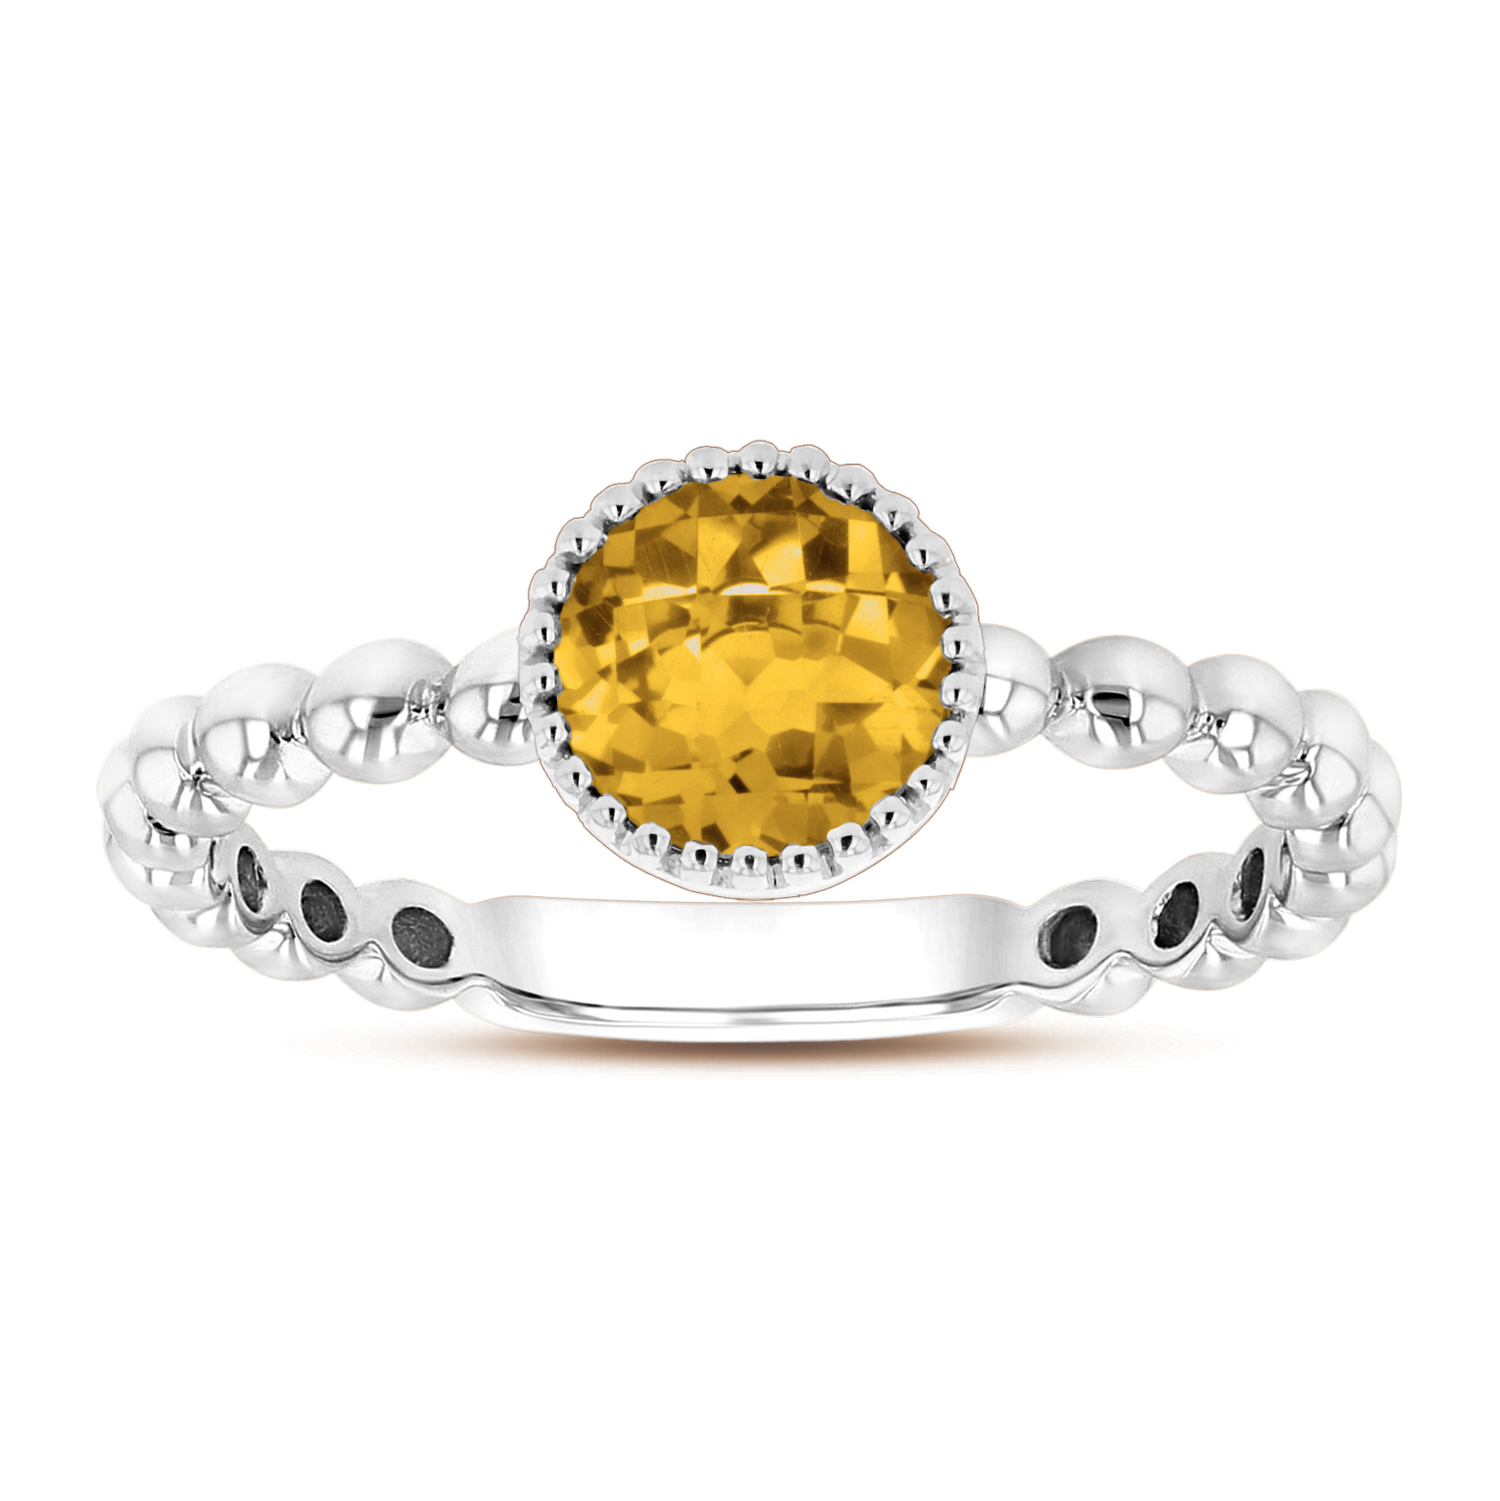 View 6mm Round Citrine Ring in 14k Gold